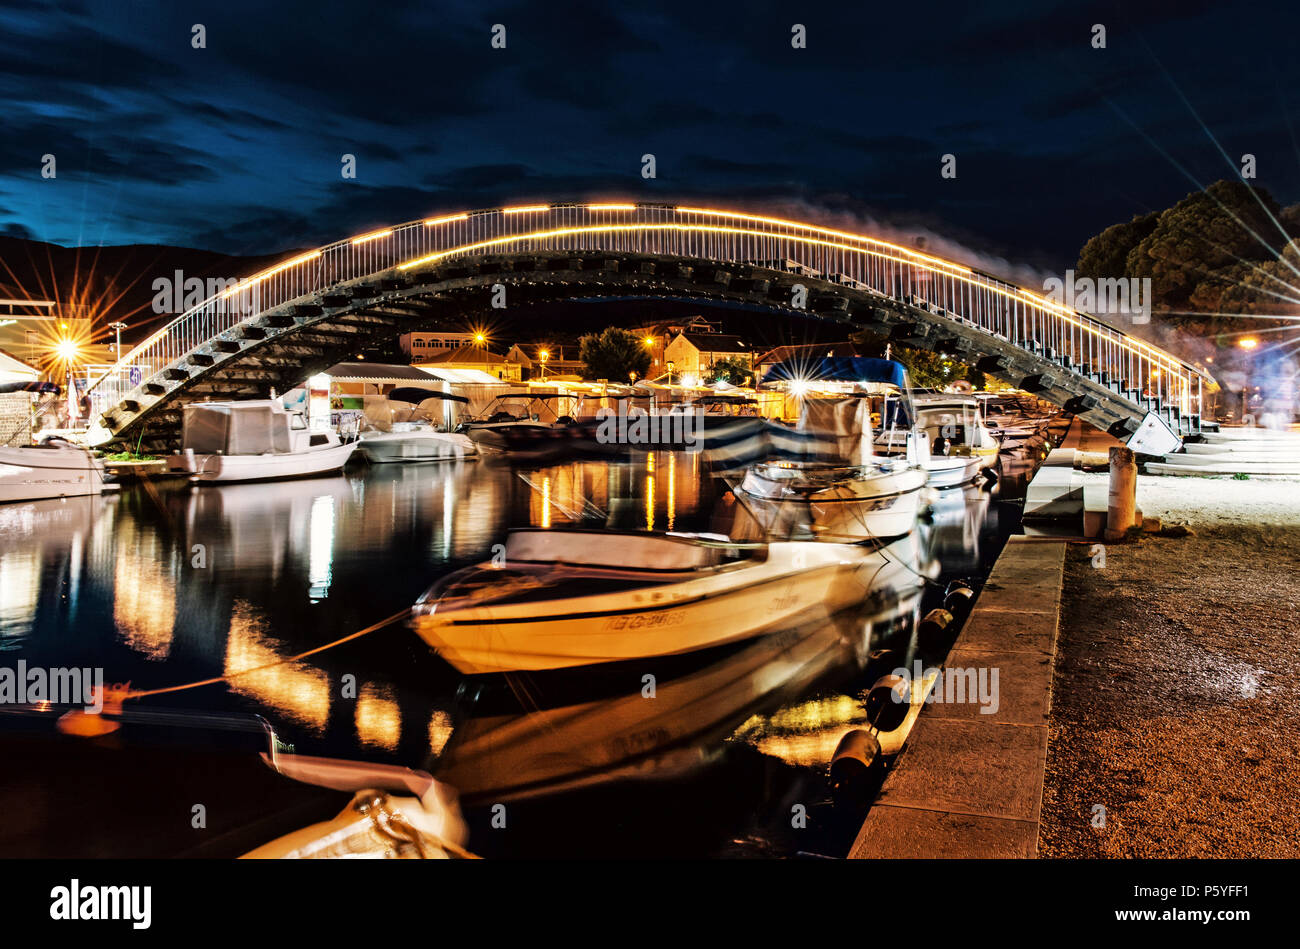 Arched bridge for pedestrians in Trogir, Croatia, Unesco. Night scene. Travel destination. Boats in the port. Yellow photo filter. Stock Photo